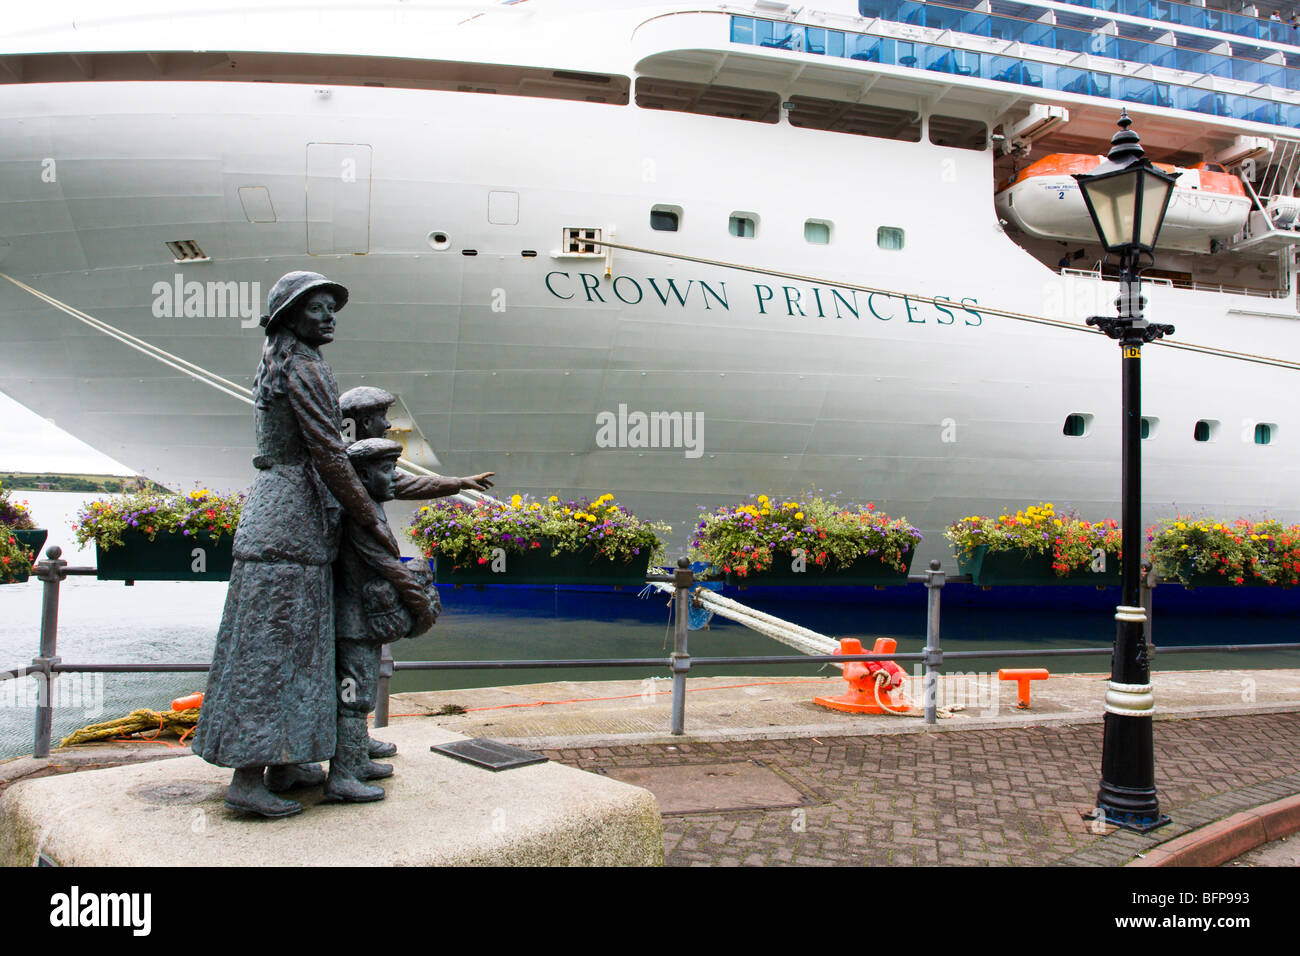 Crown Princess liner docked at Cobh, Cork, Ireland with statue of Annie Moore in foreground - Stock Image